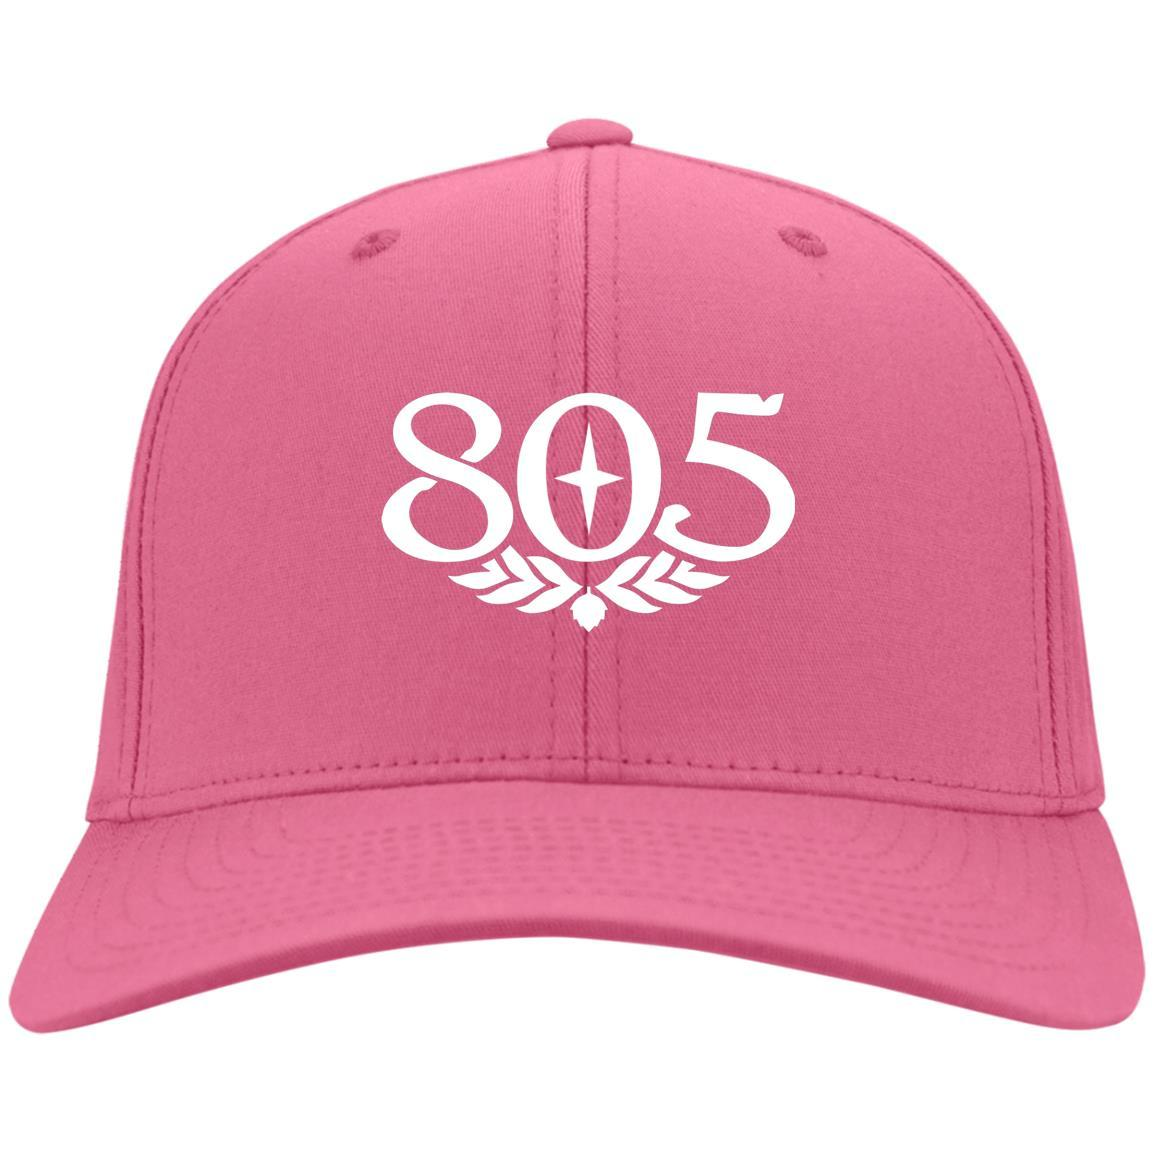 805 Beer - Port & Co. Twill Cap Neon Pink